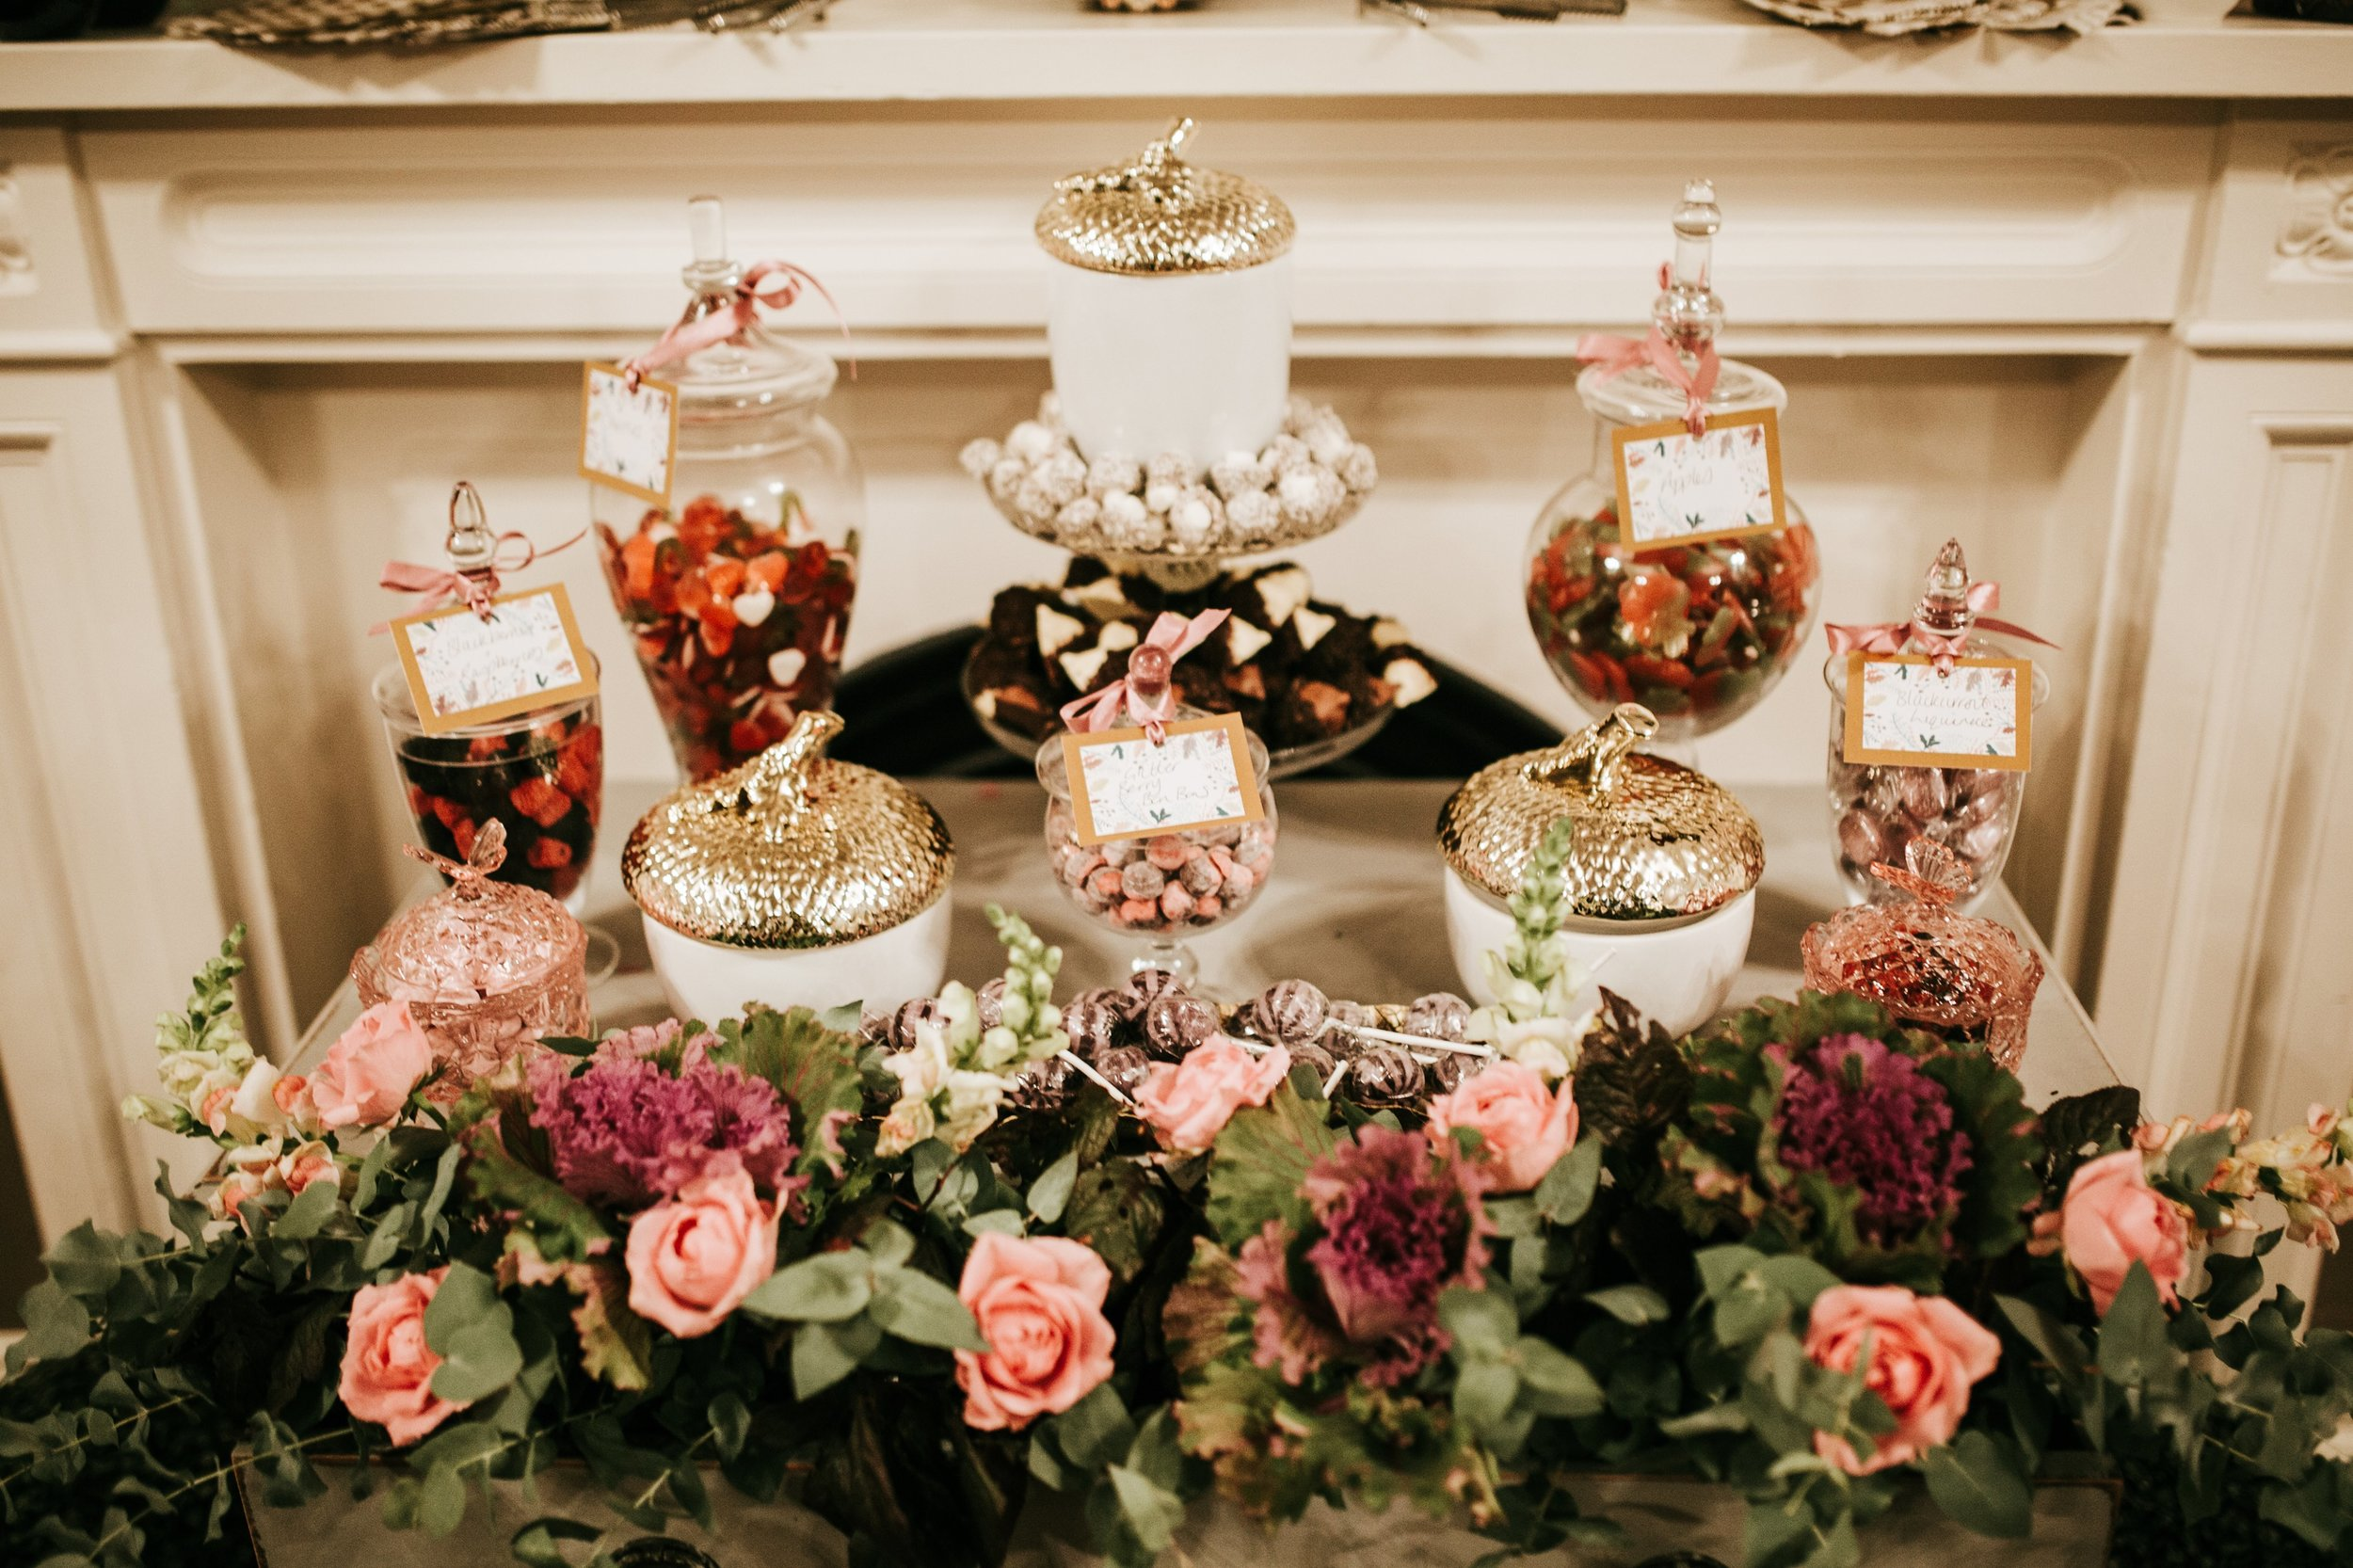 Sweetie Table apothecary jars